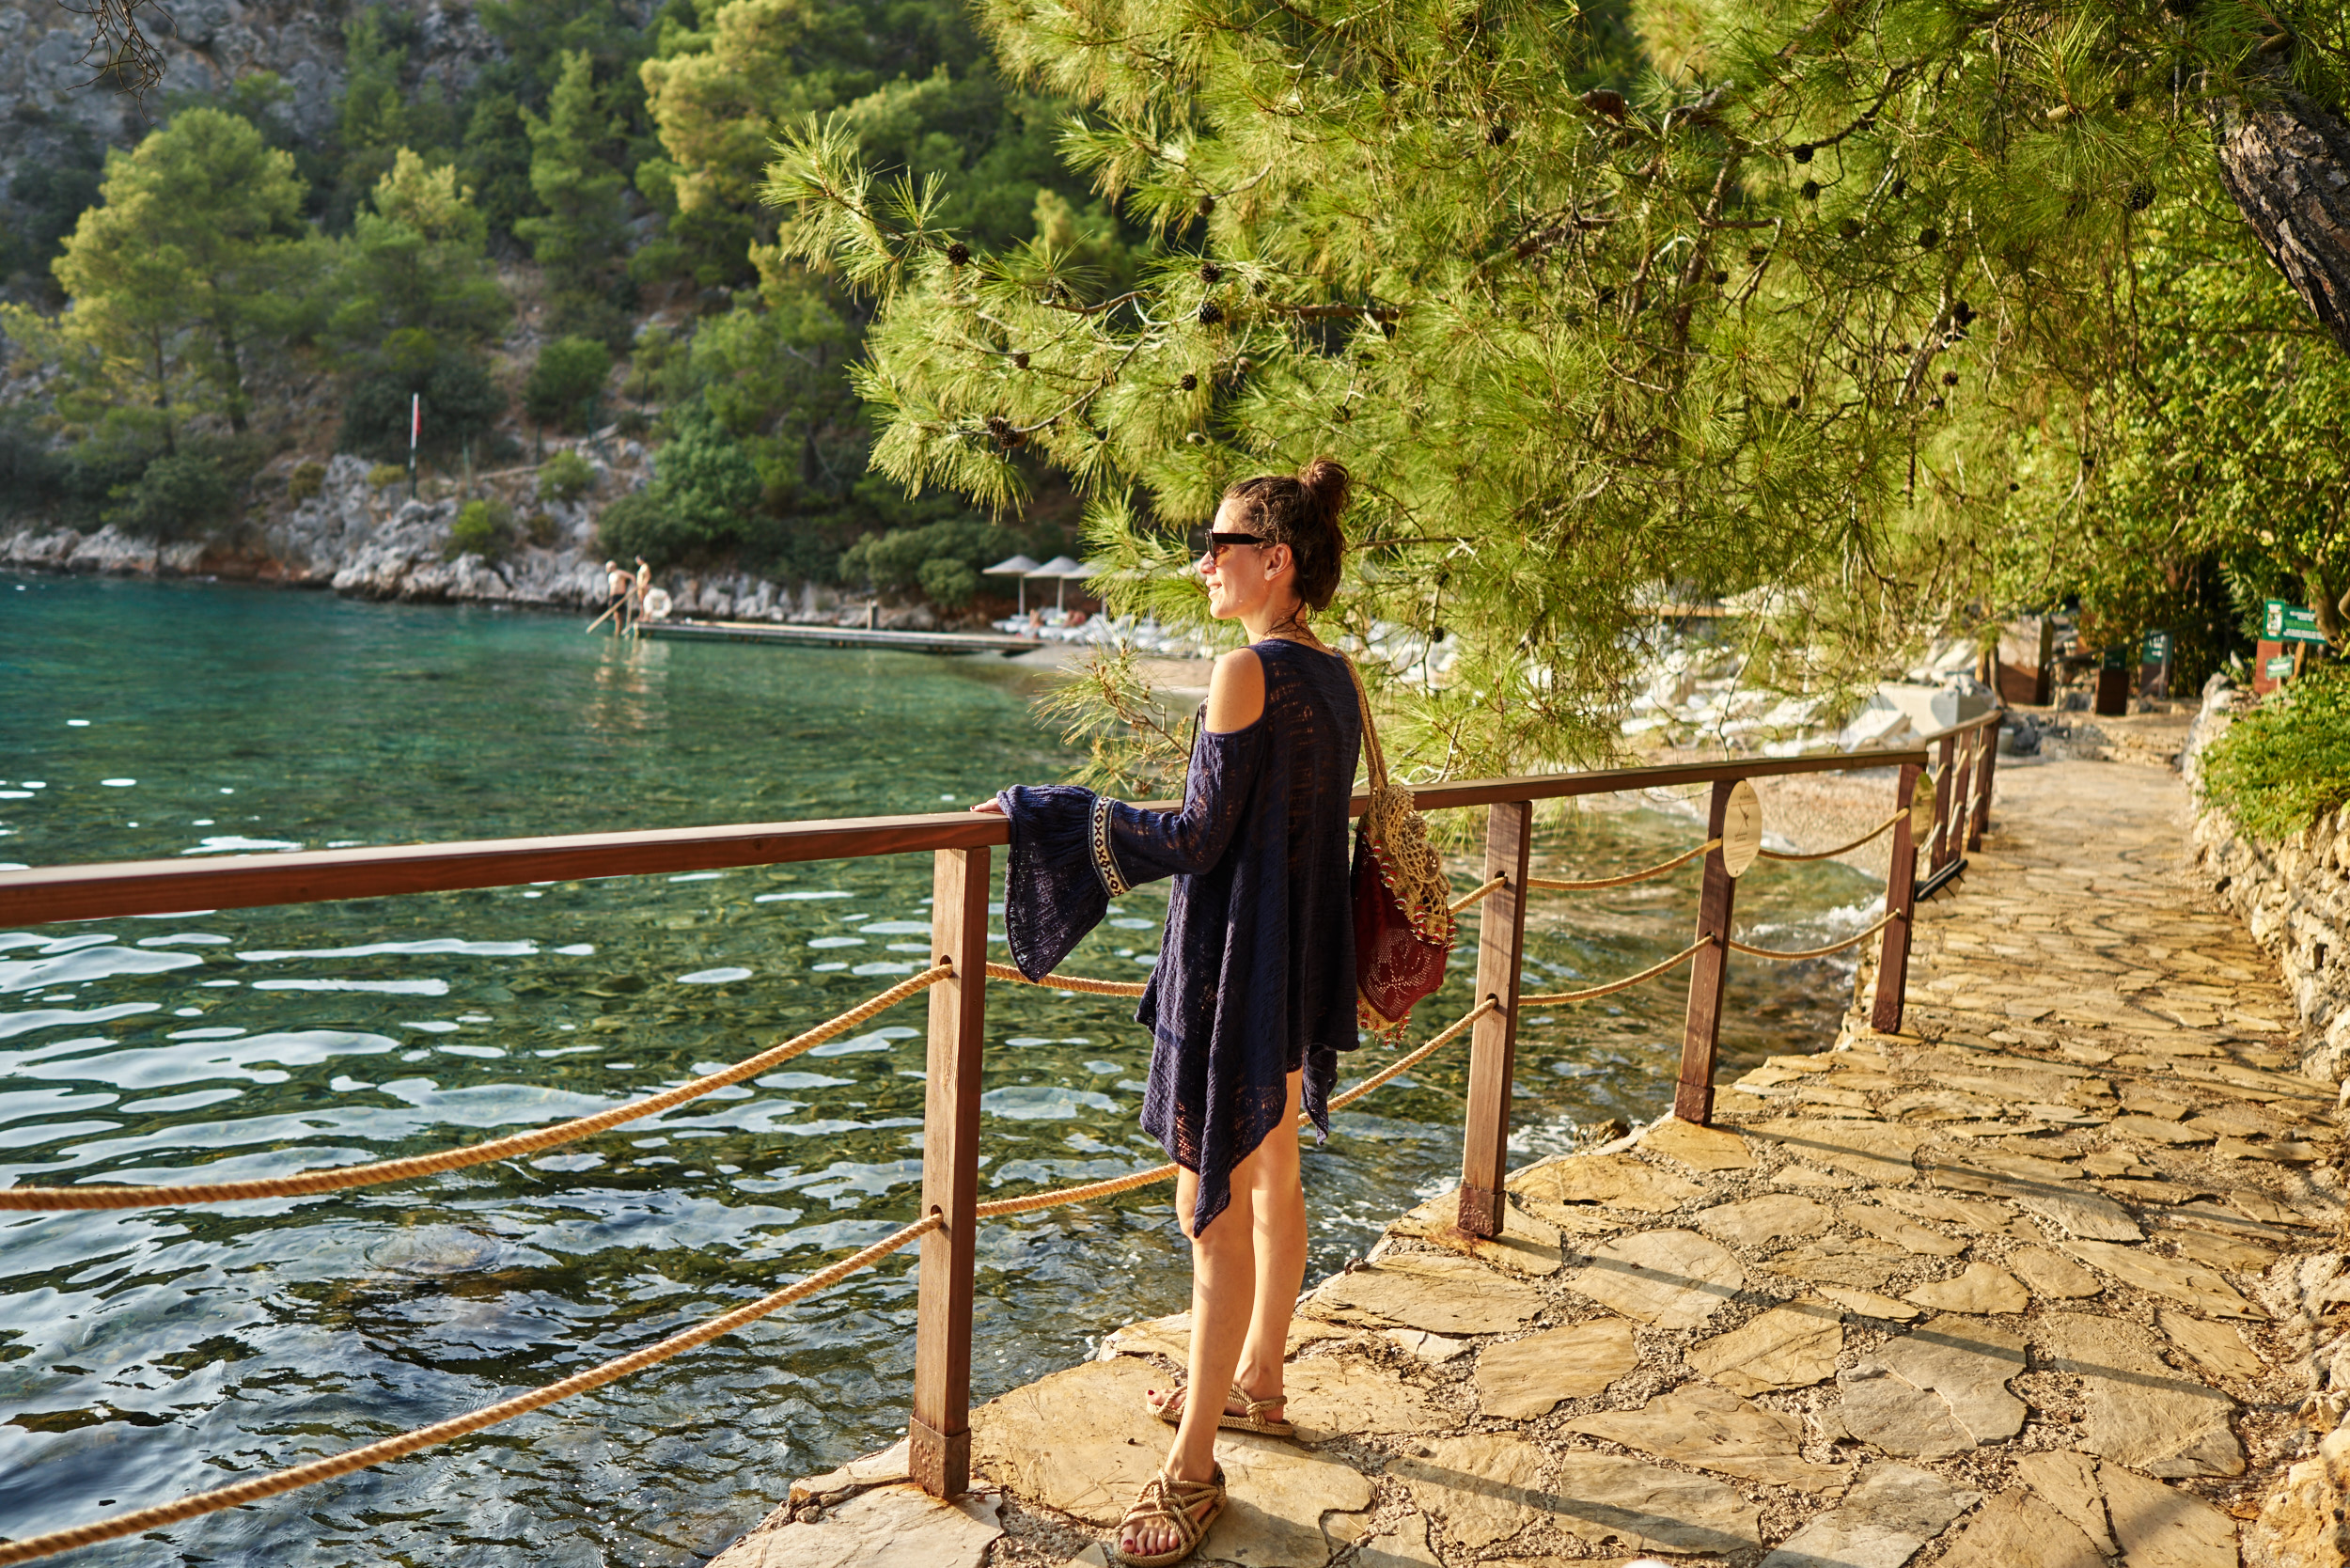 billur saatci, offnegiysem, street style, turkish style blogger, hillside beach club, sunset, heaven on earth, free people, marni